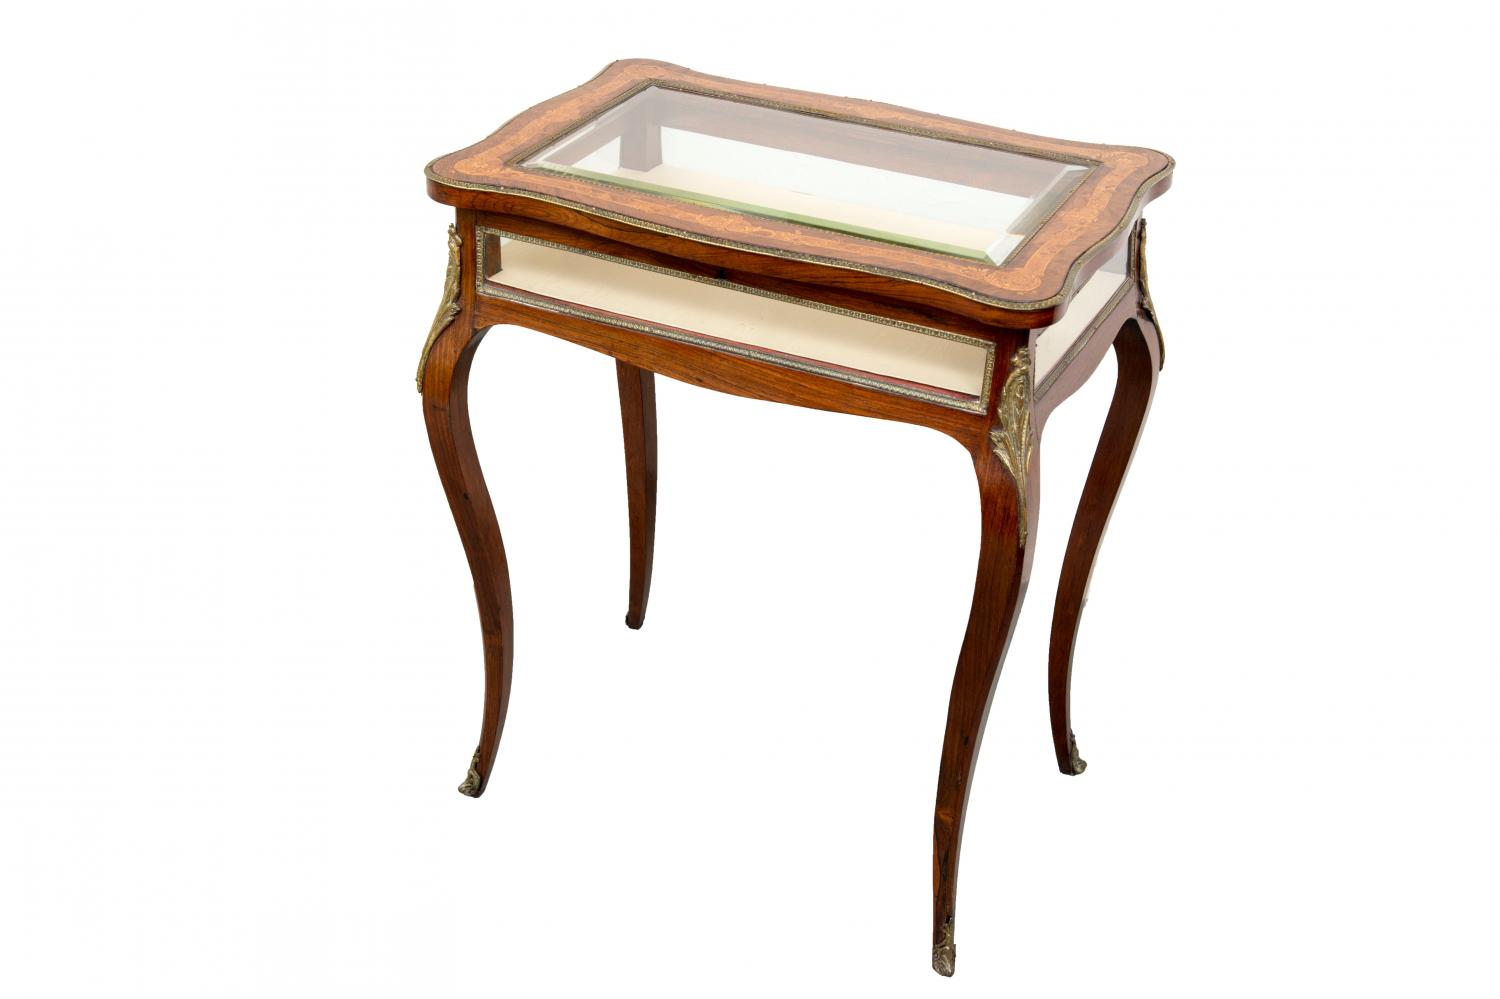 A fine quality inlaid rosewood display table